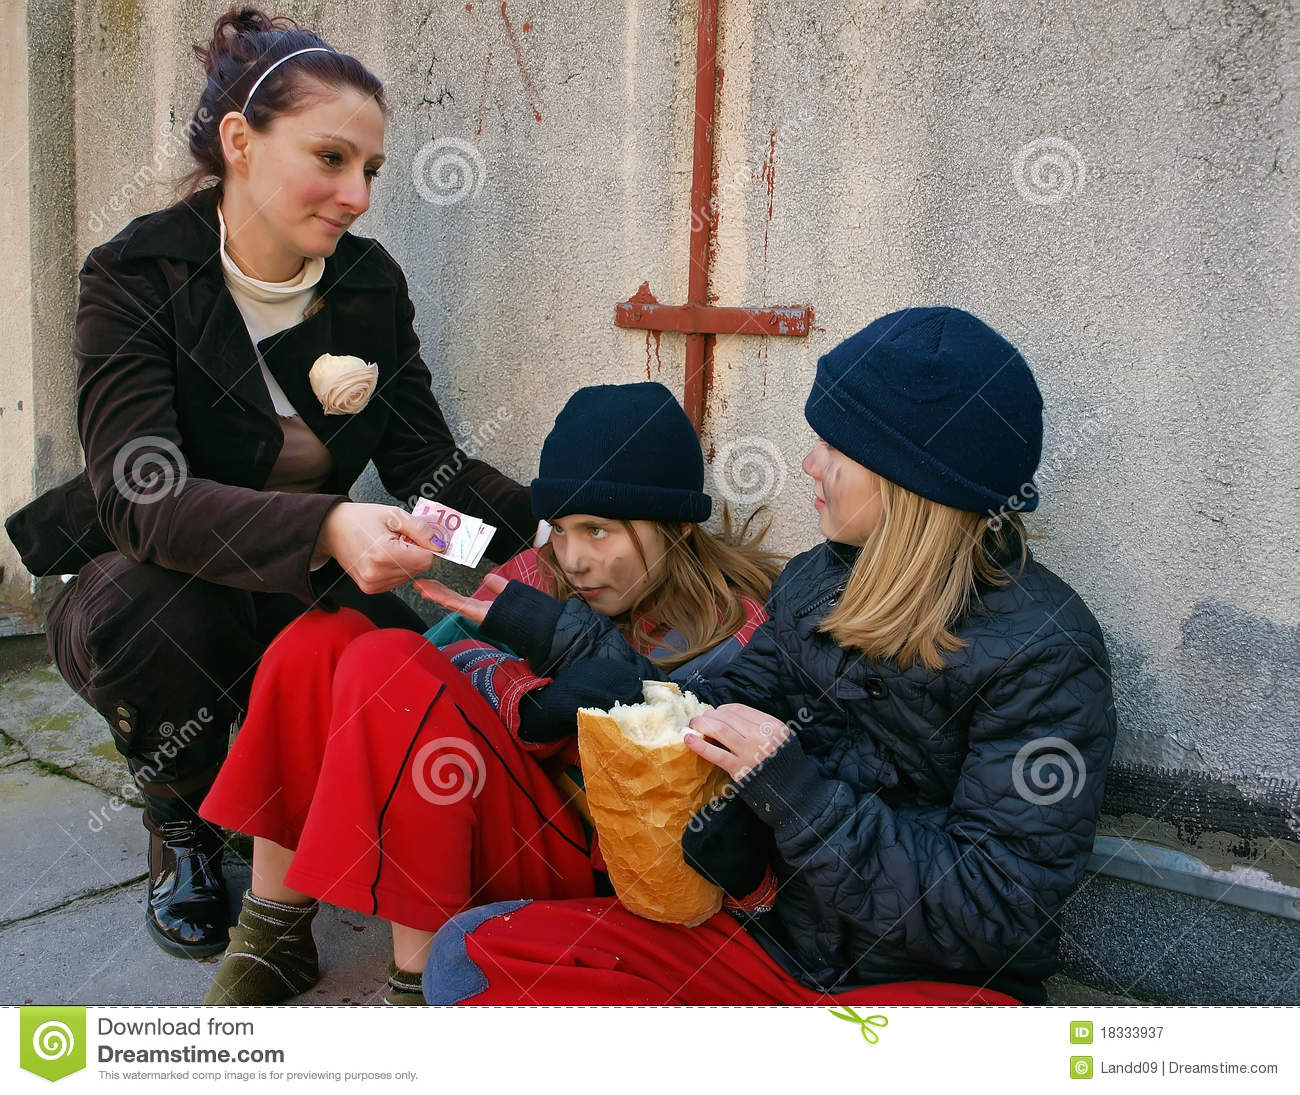 Money To Children Beggars Royalty Free Stock Photography